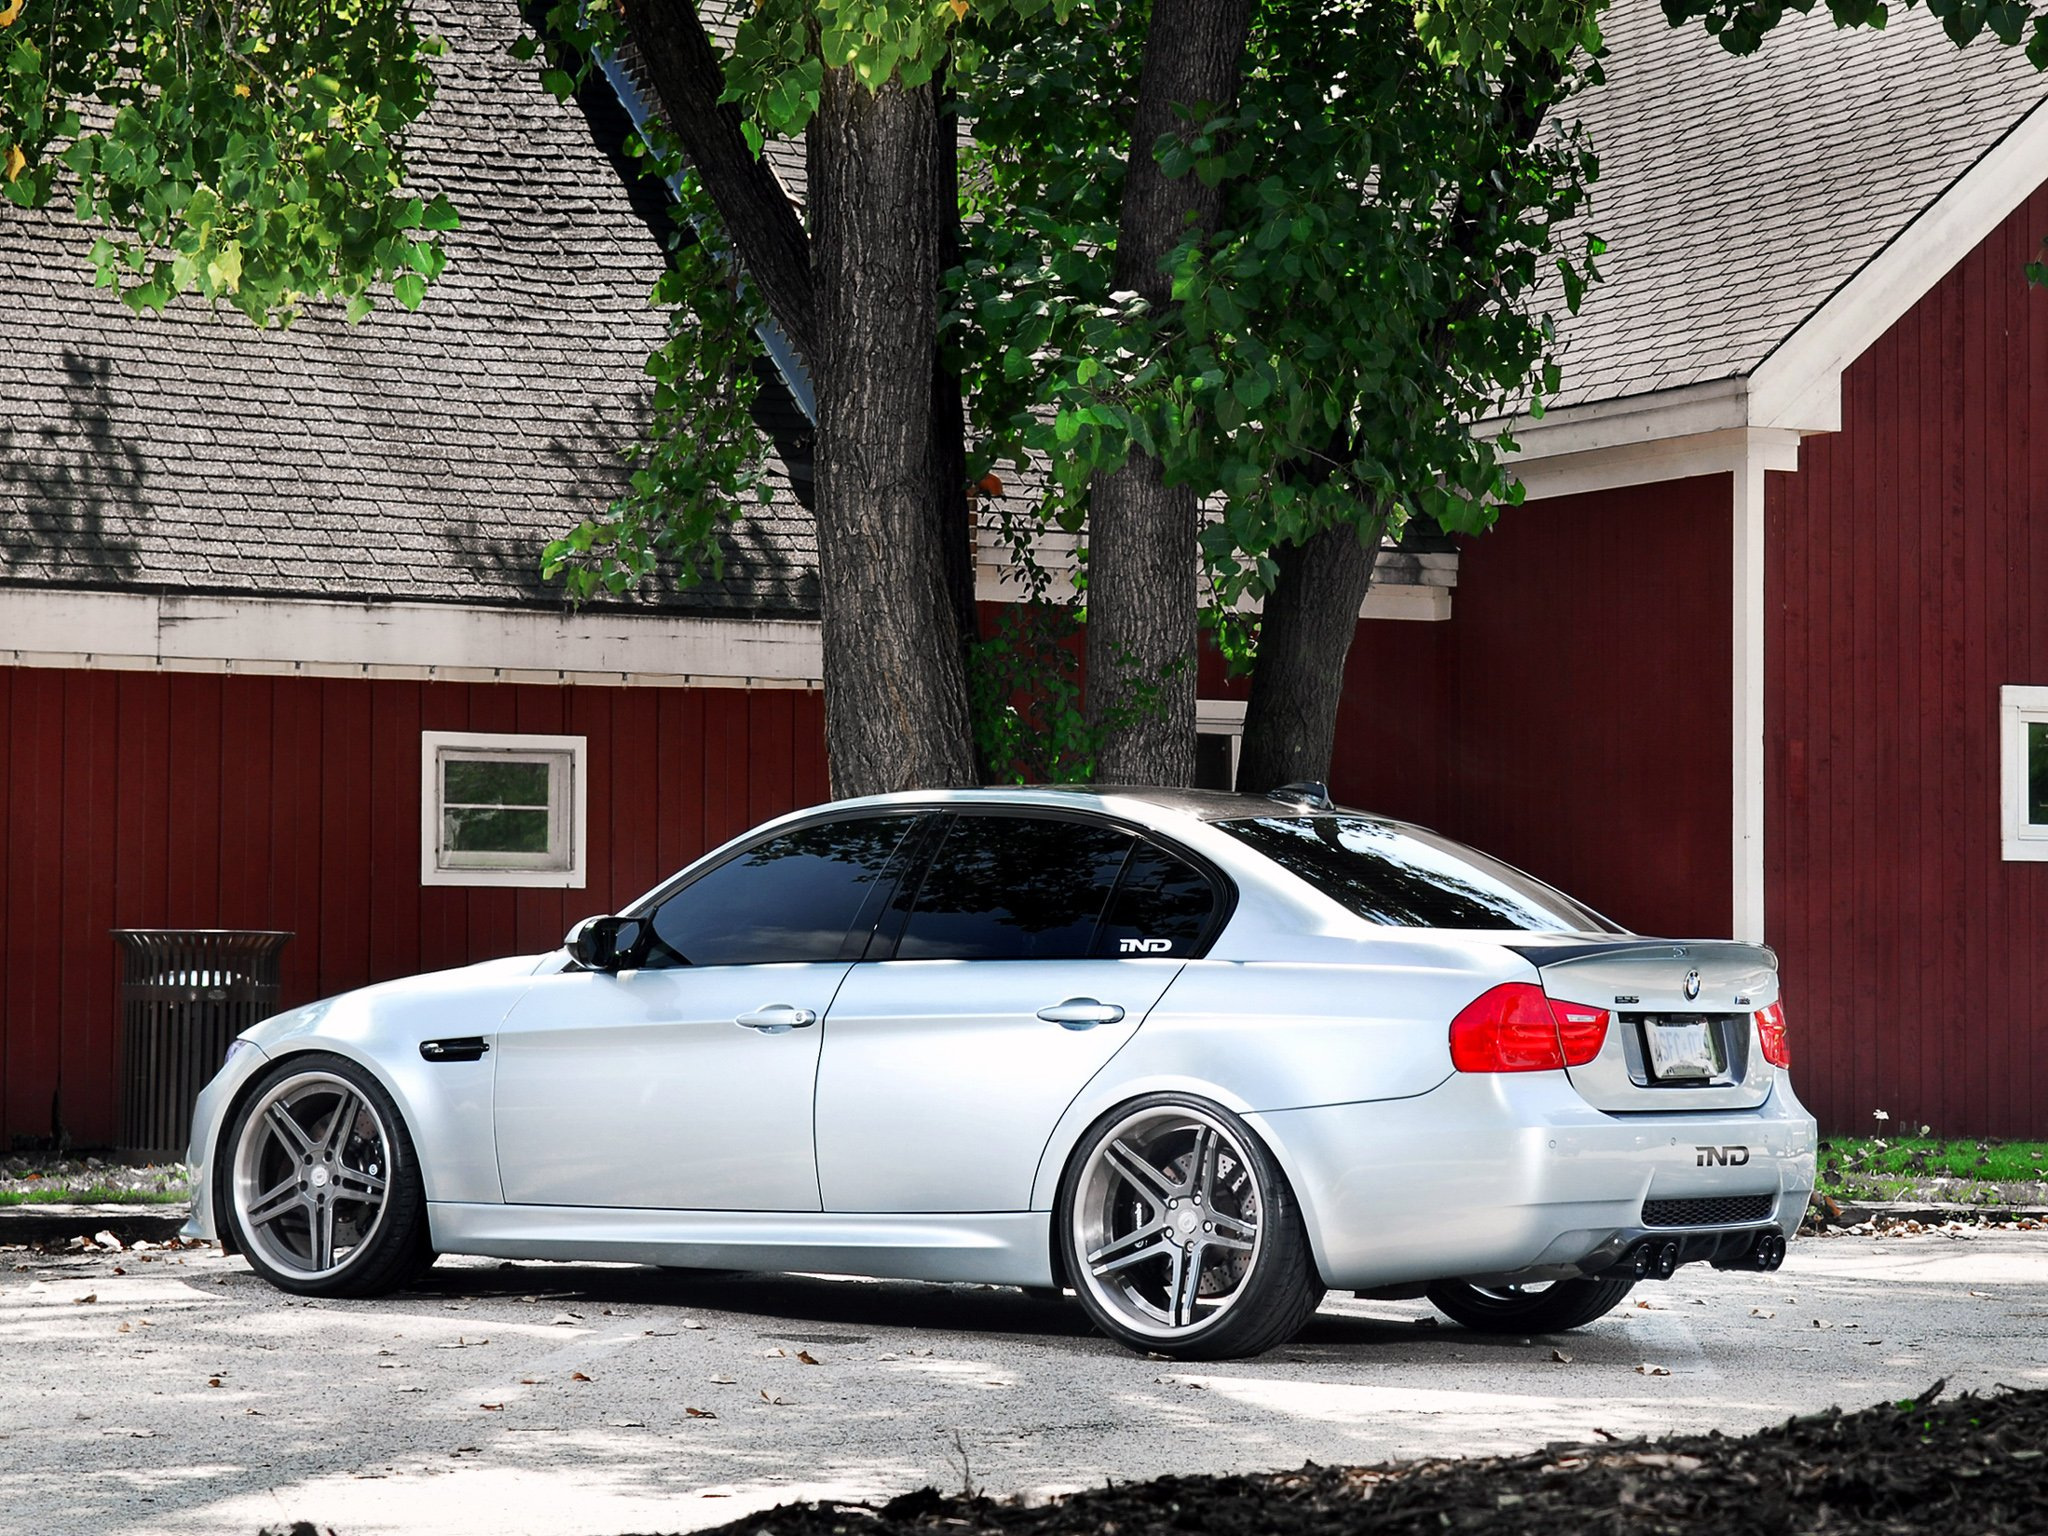 2010 Ind Bmw M 3 Sedan E90 Tuning Wallpaper 2048x1536